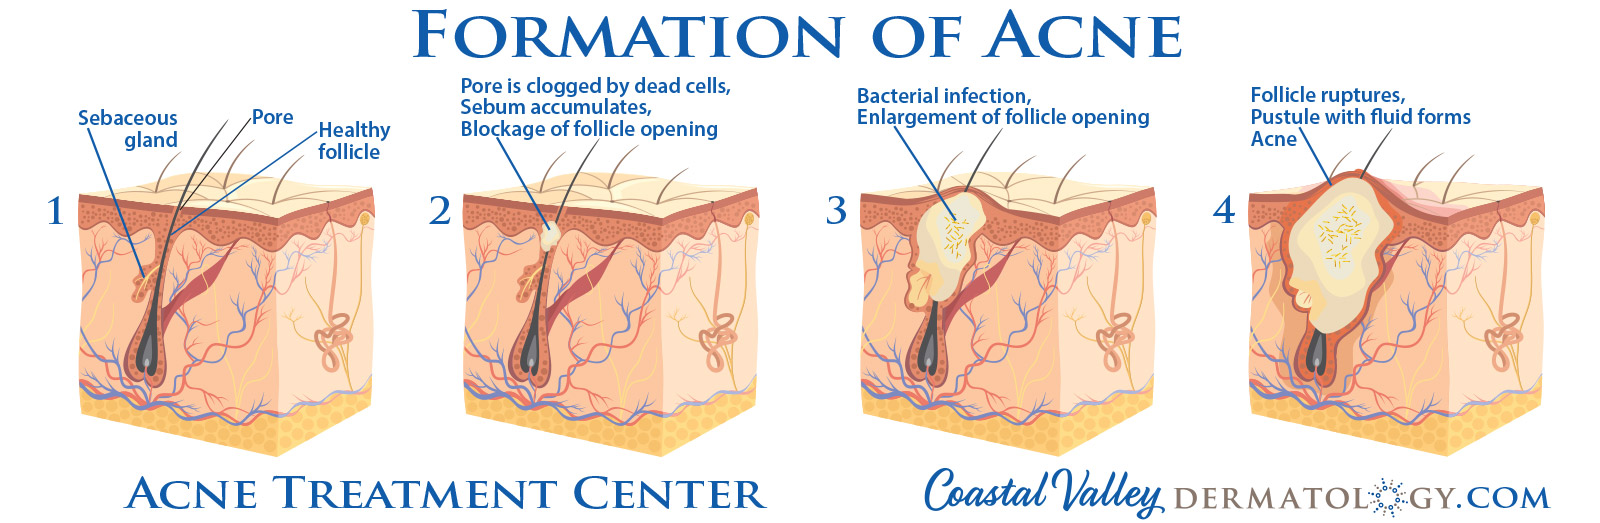 hight resolution of coastal valley dermatology carmel formation of acne photo